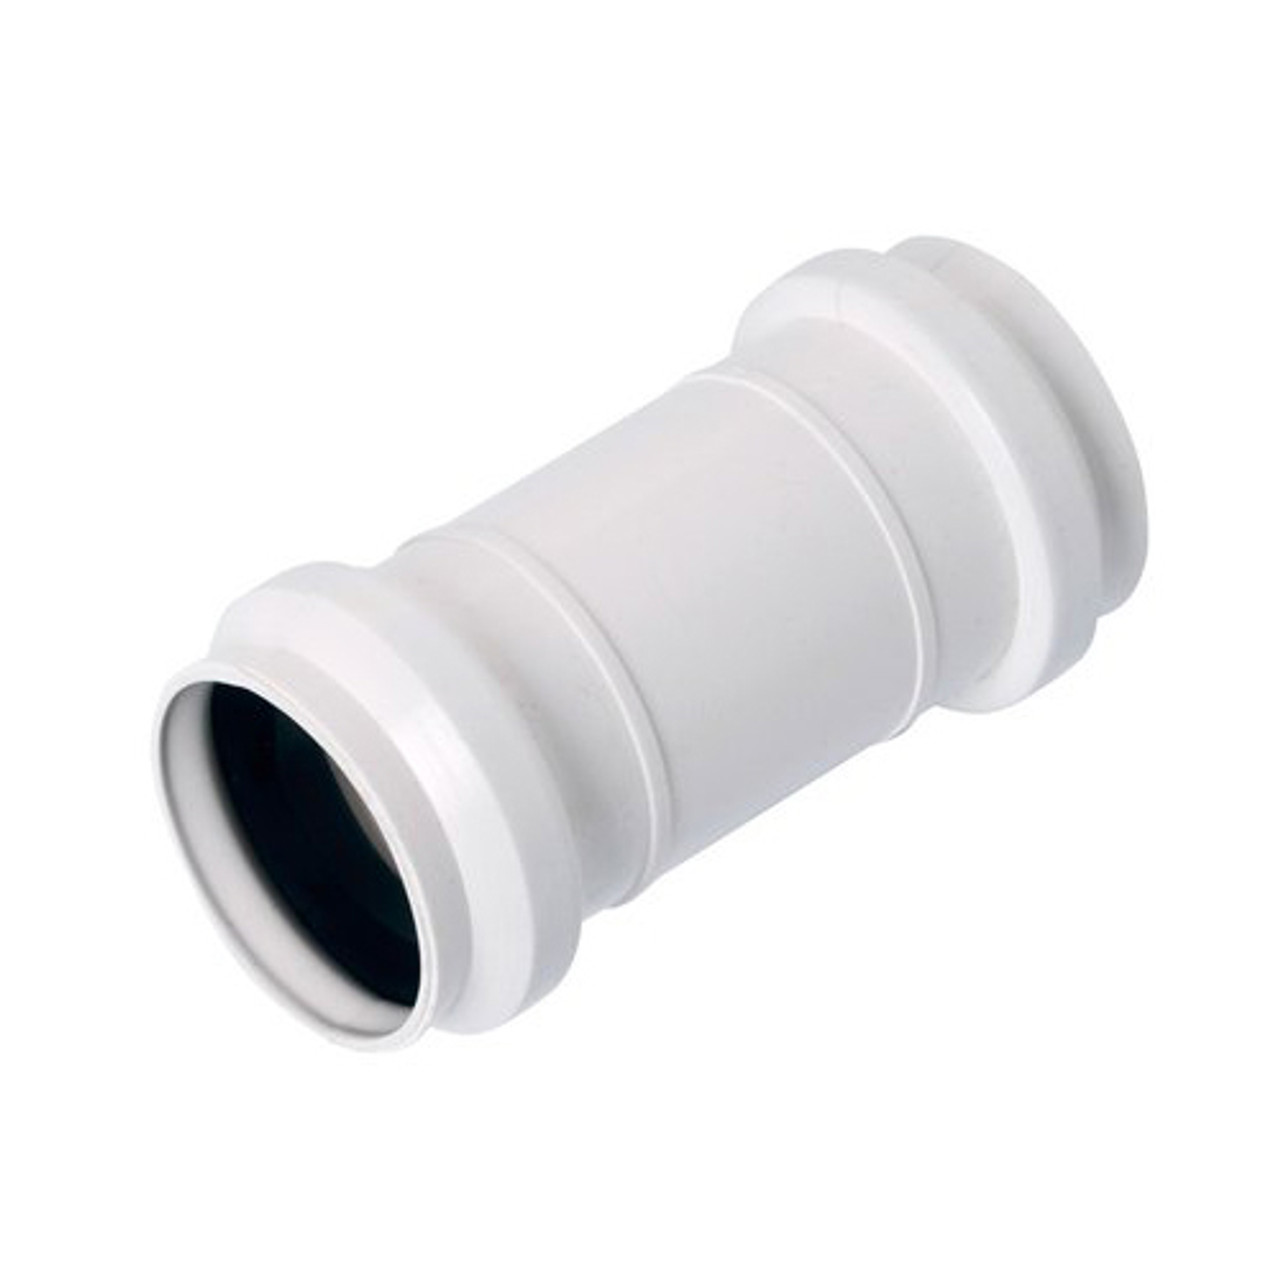 50mm Waste Pipe Muff Joiner Couping Pipe Drain Fittings Sewage Installation